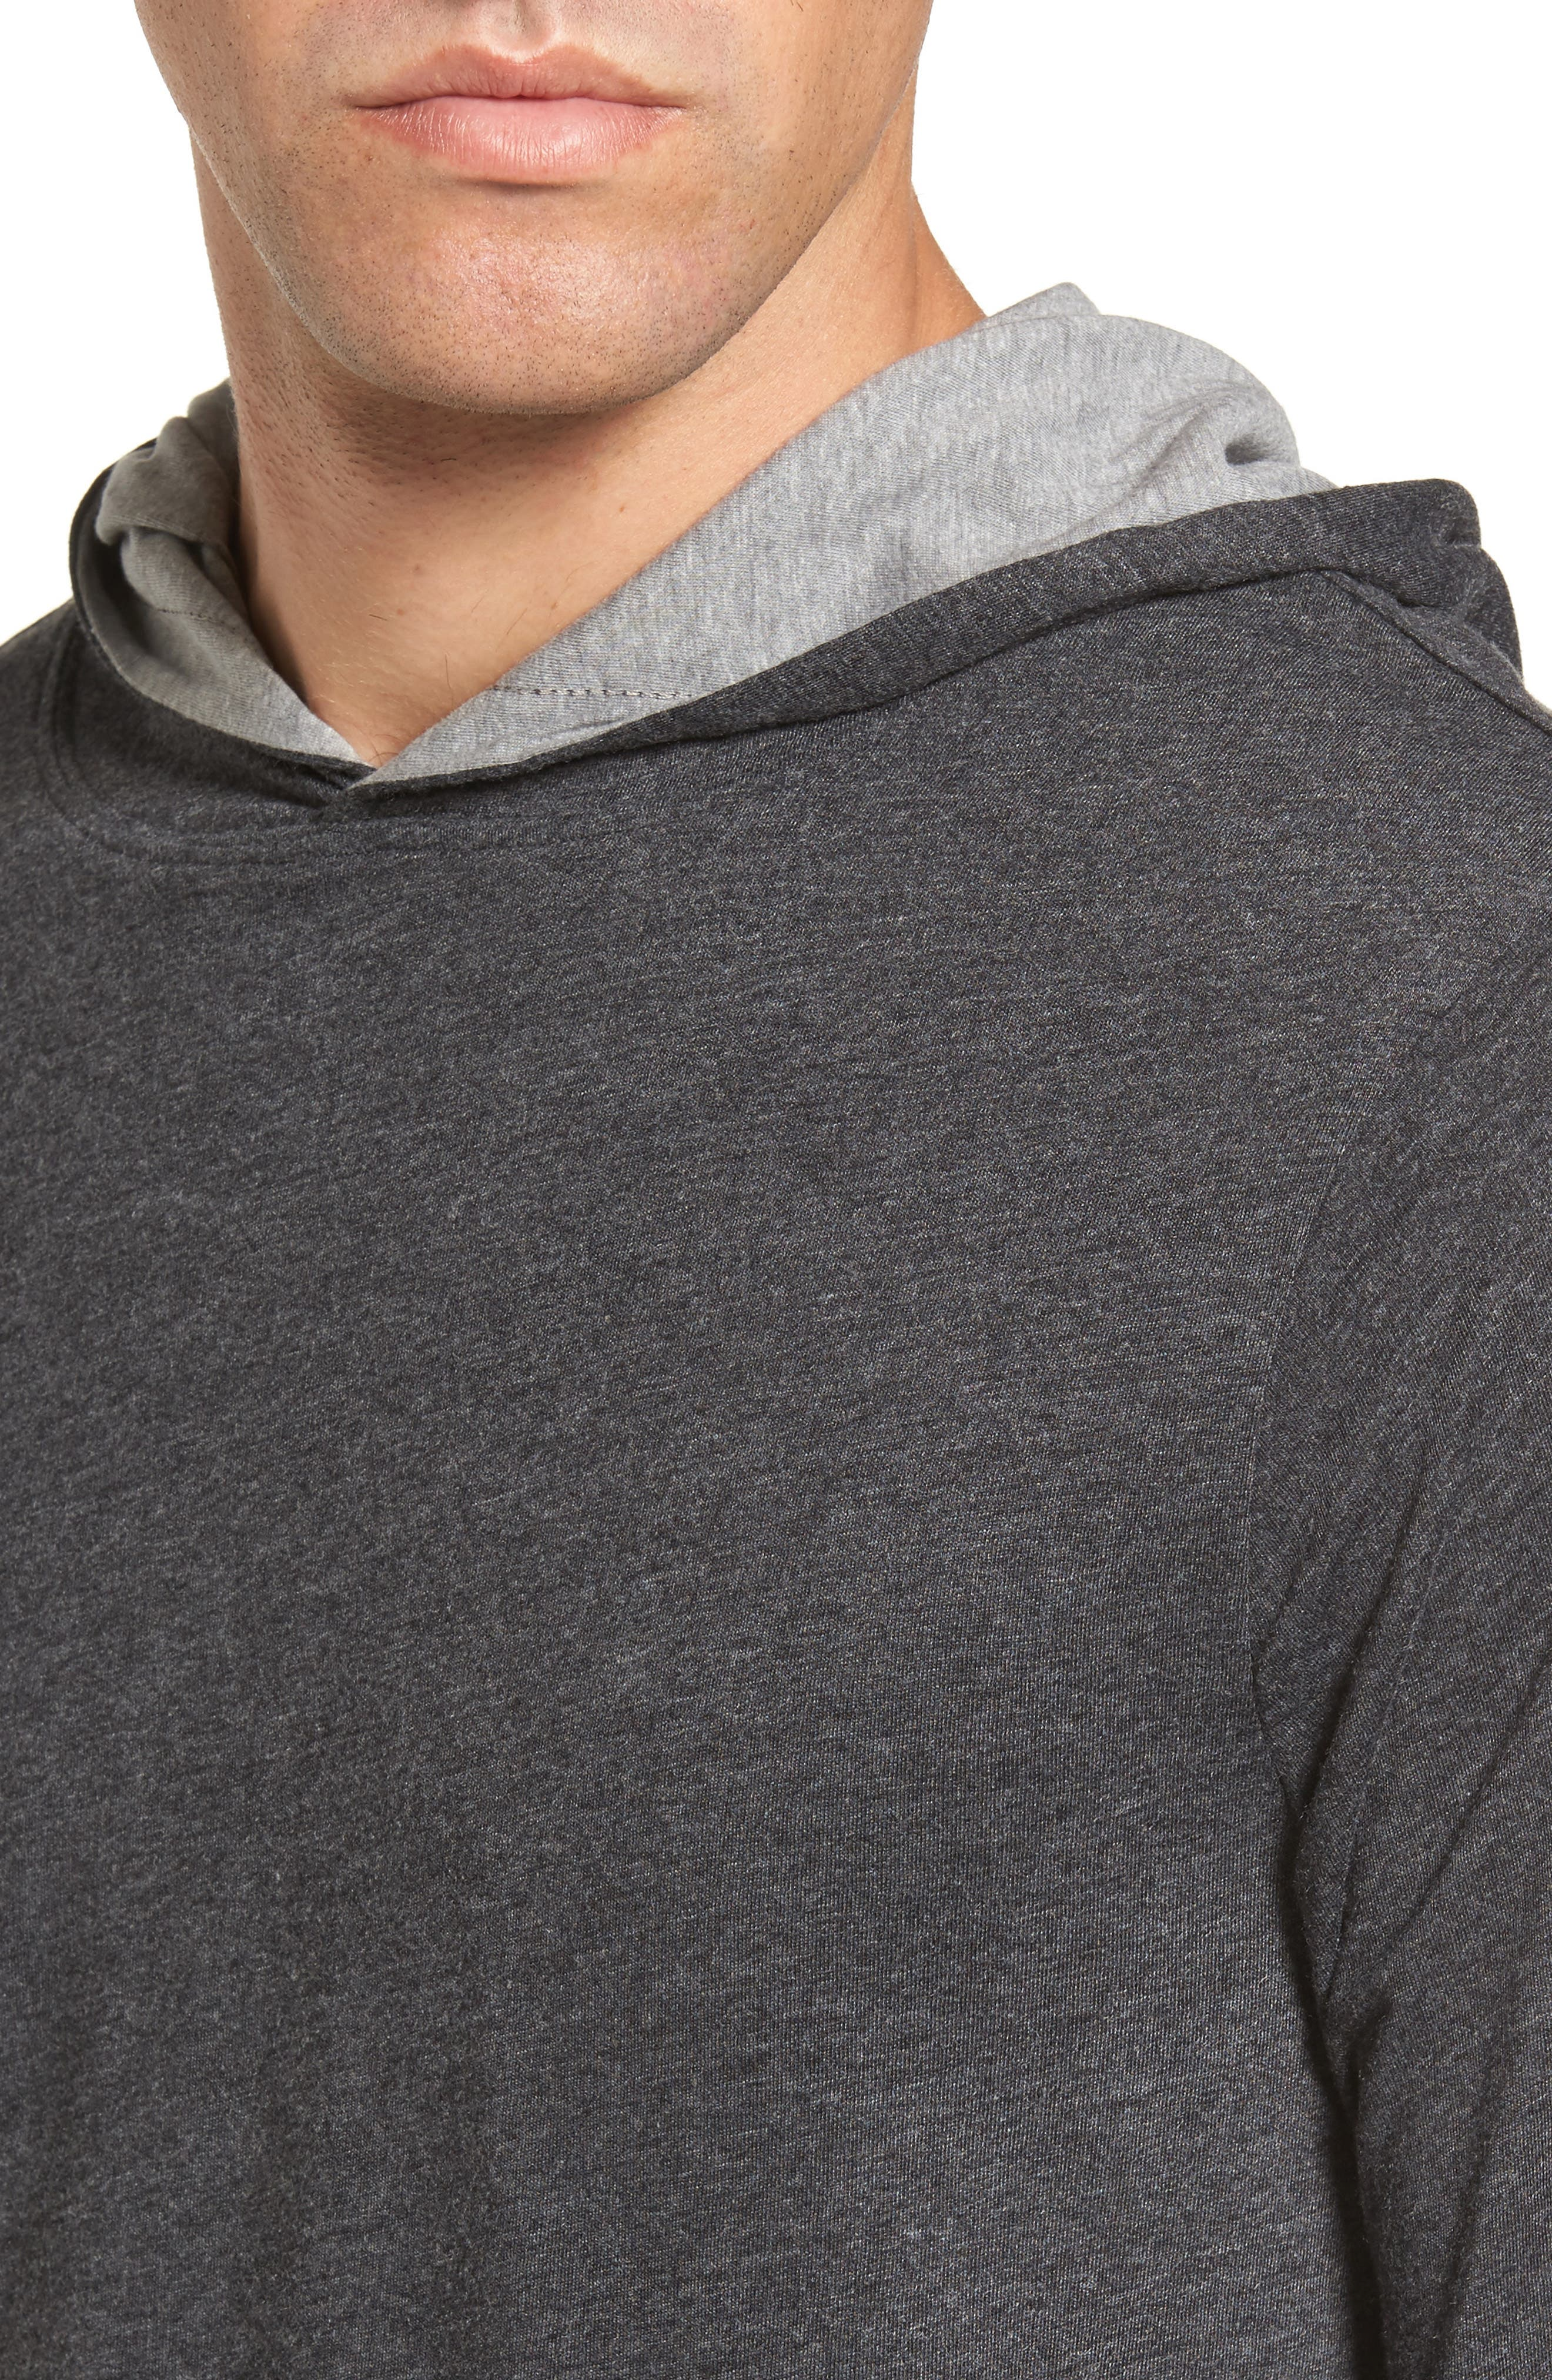 Reversible Hooded Jersey T-Shirt,                             Alternate thumbnail 5, color,                             017